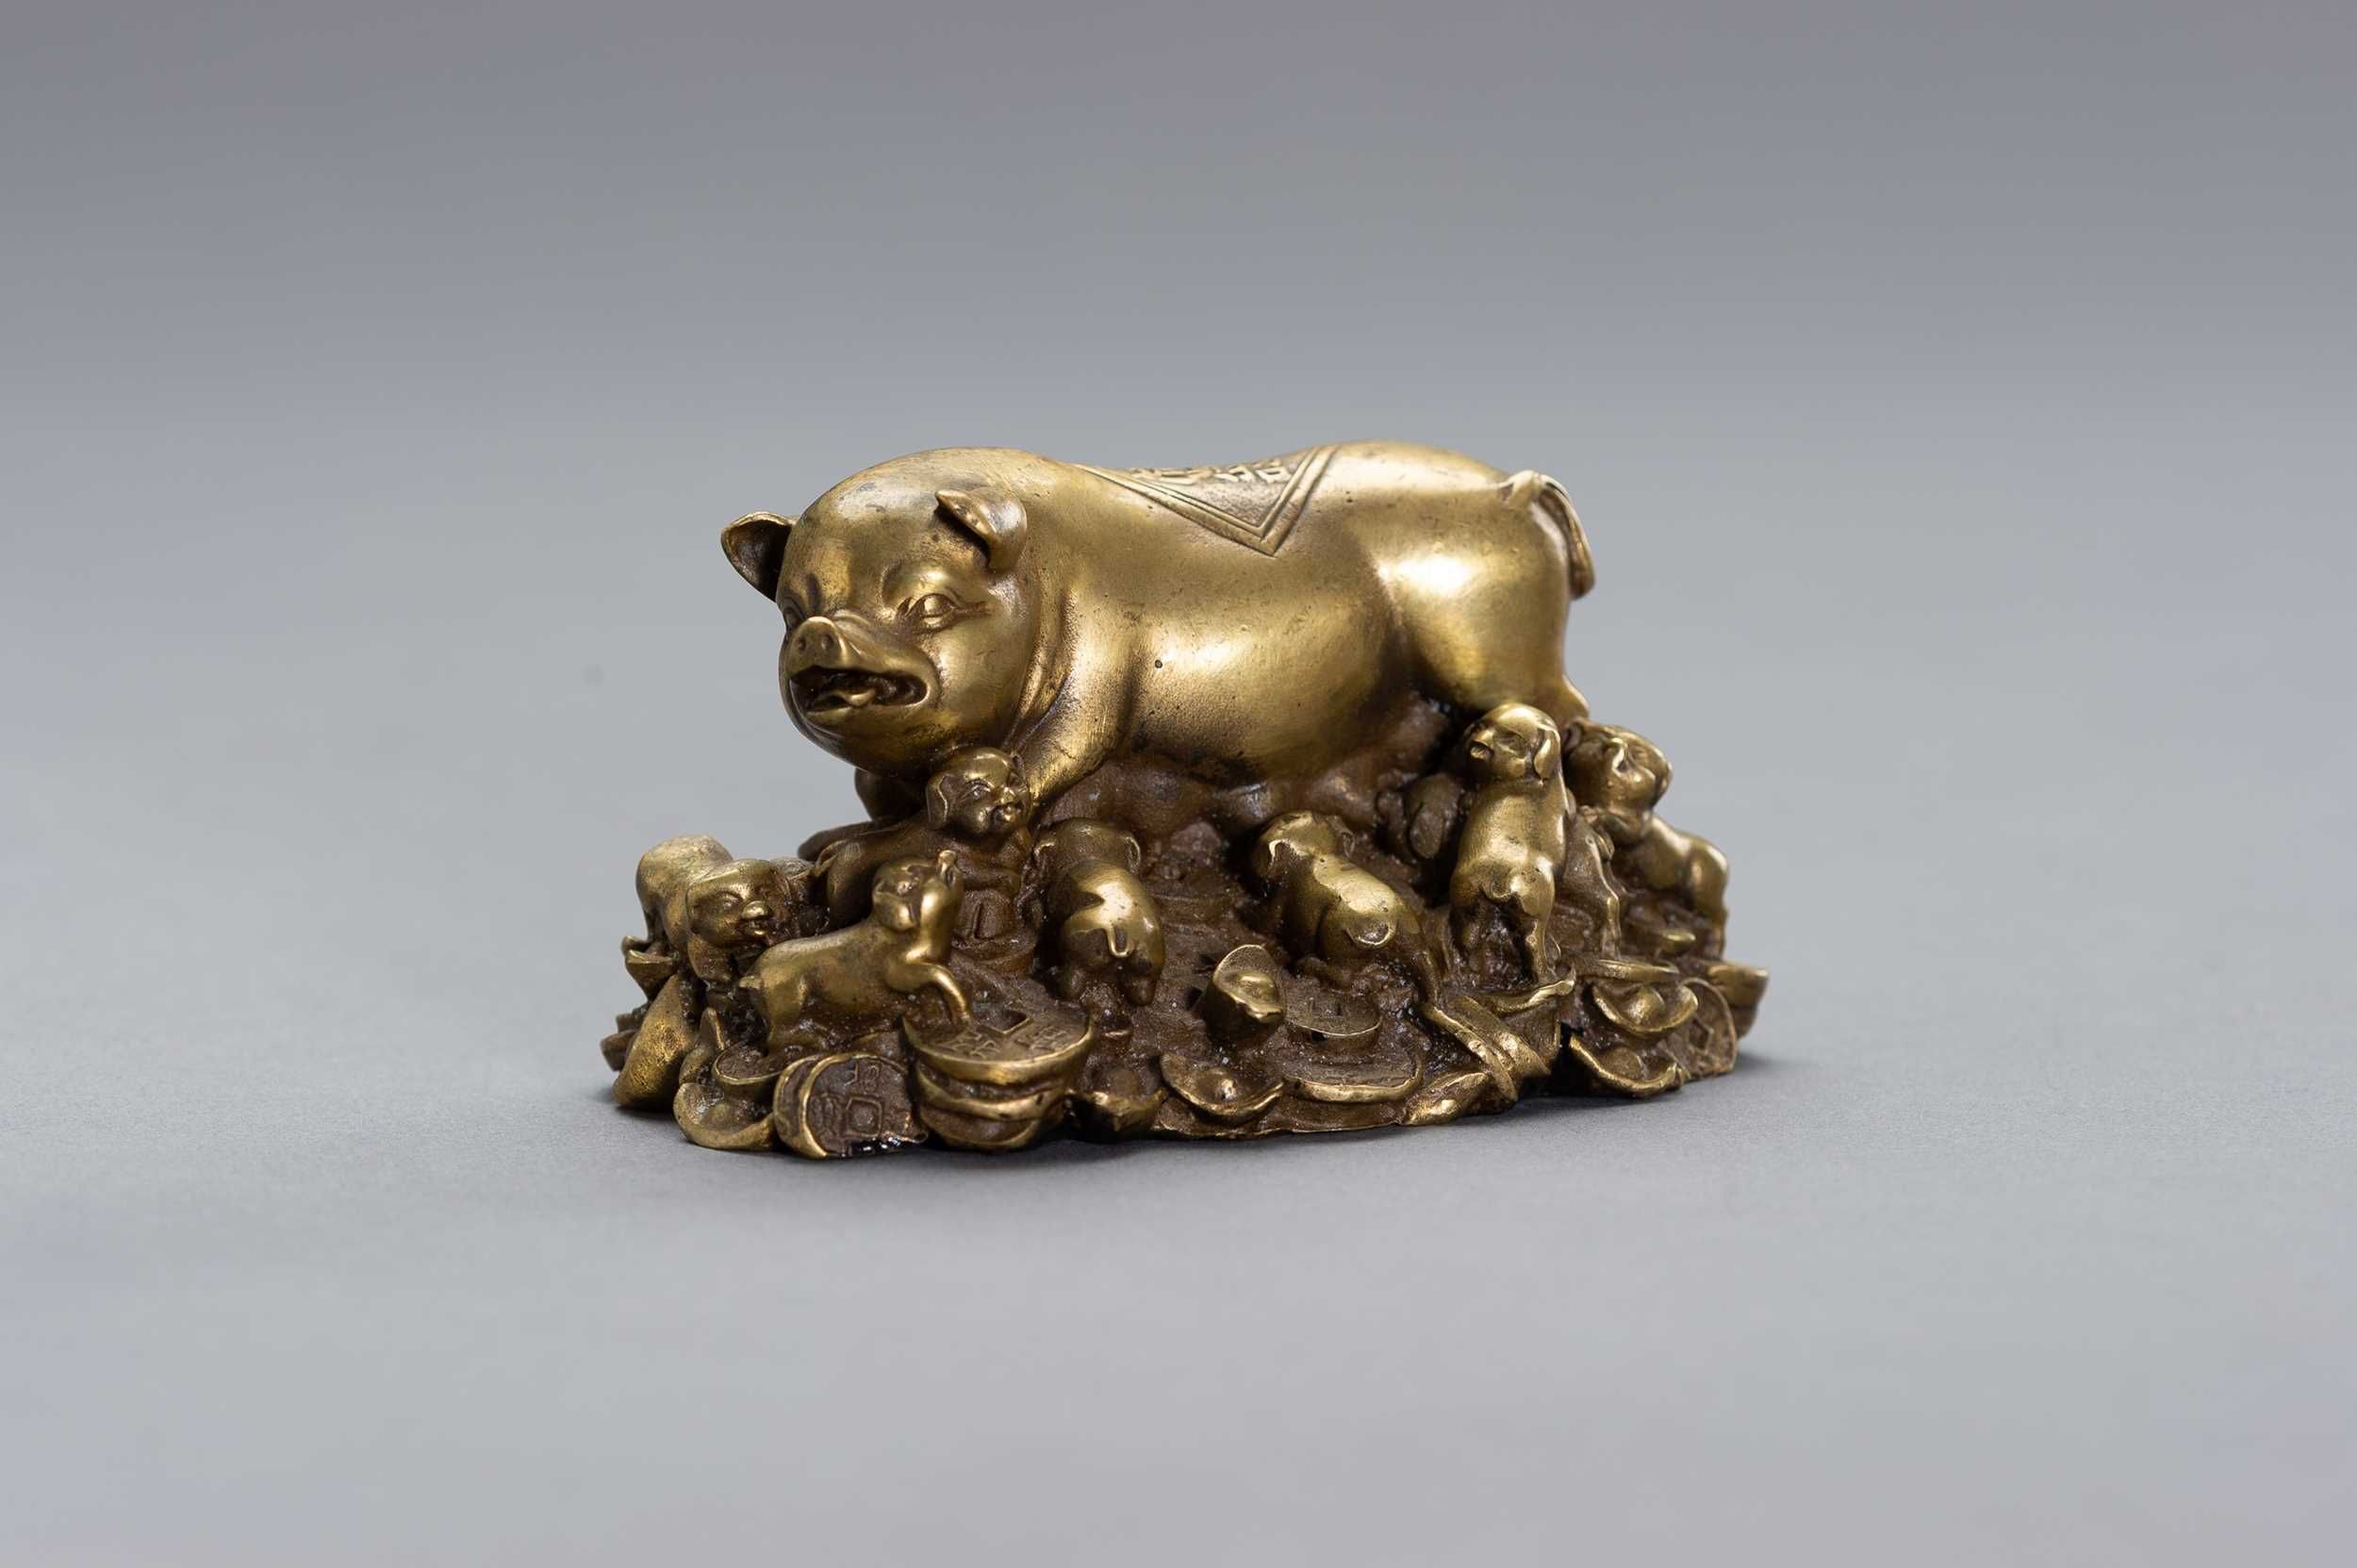 Lot 31 - A BRONZE LUCKY CHARM OF A SOW WITH HER YOUNG